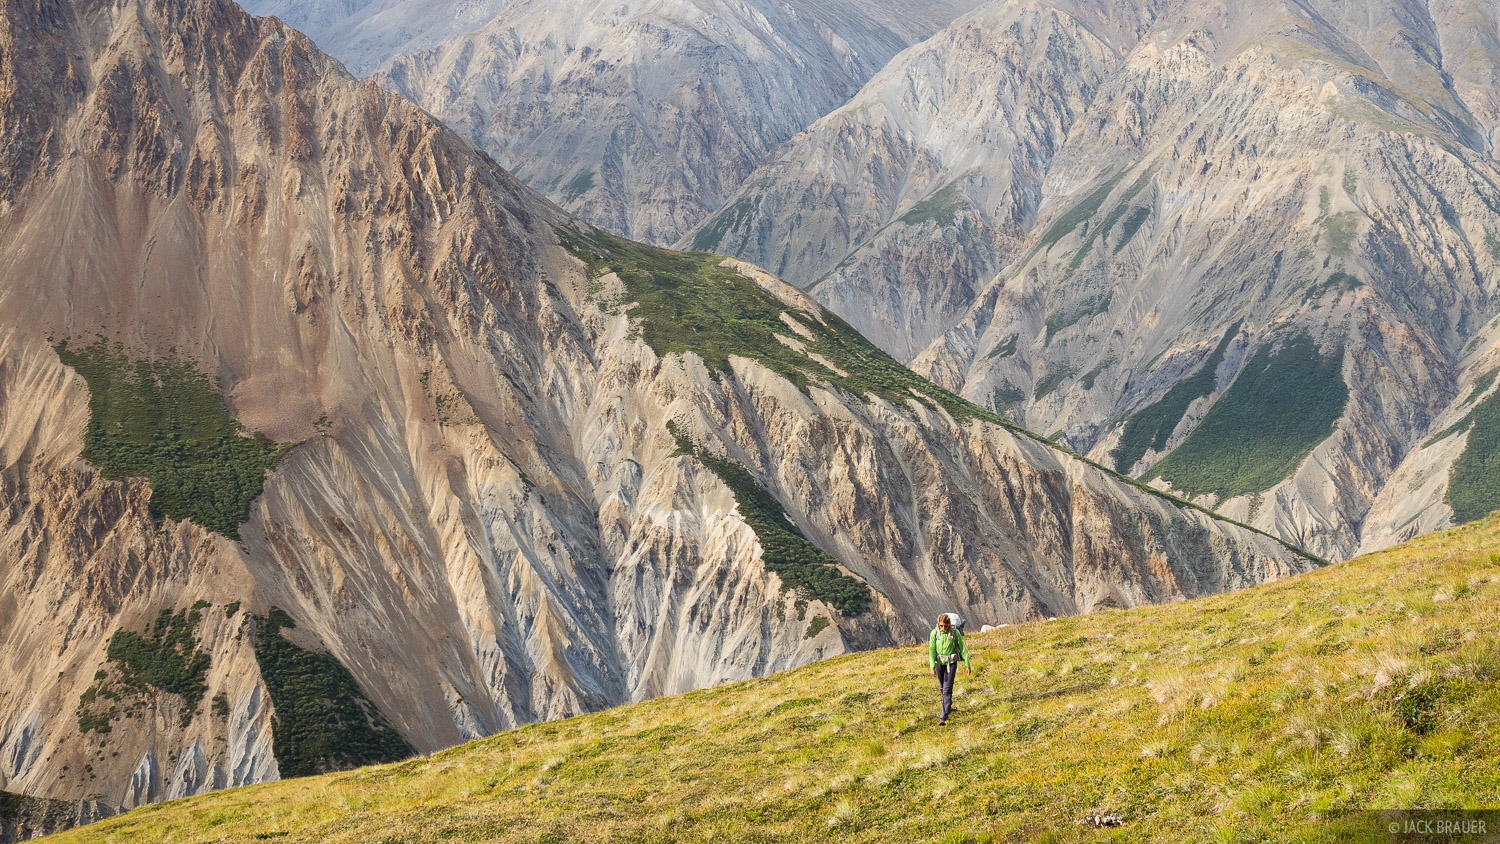 Canada, Kluane National Park, Slims River, Yukon, hiking, photo